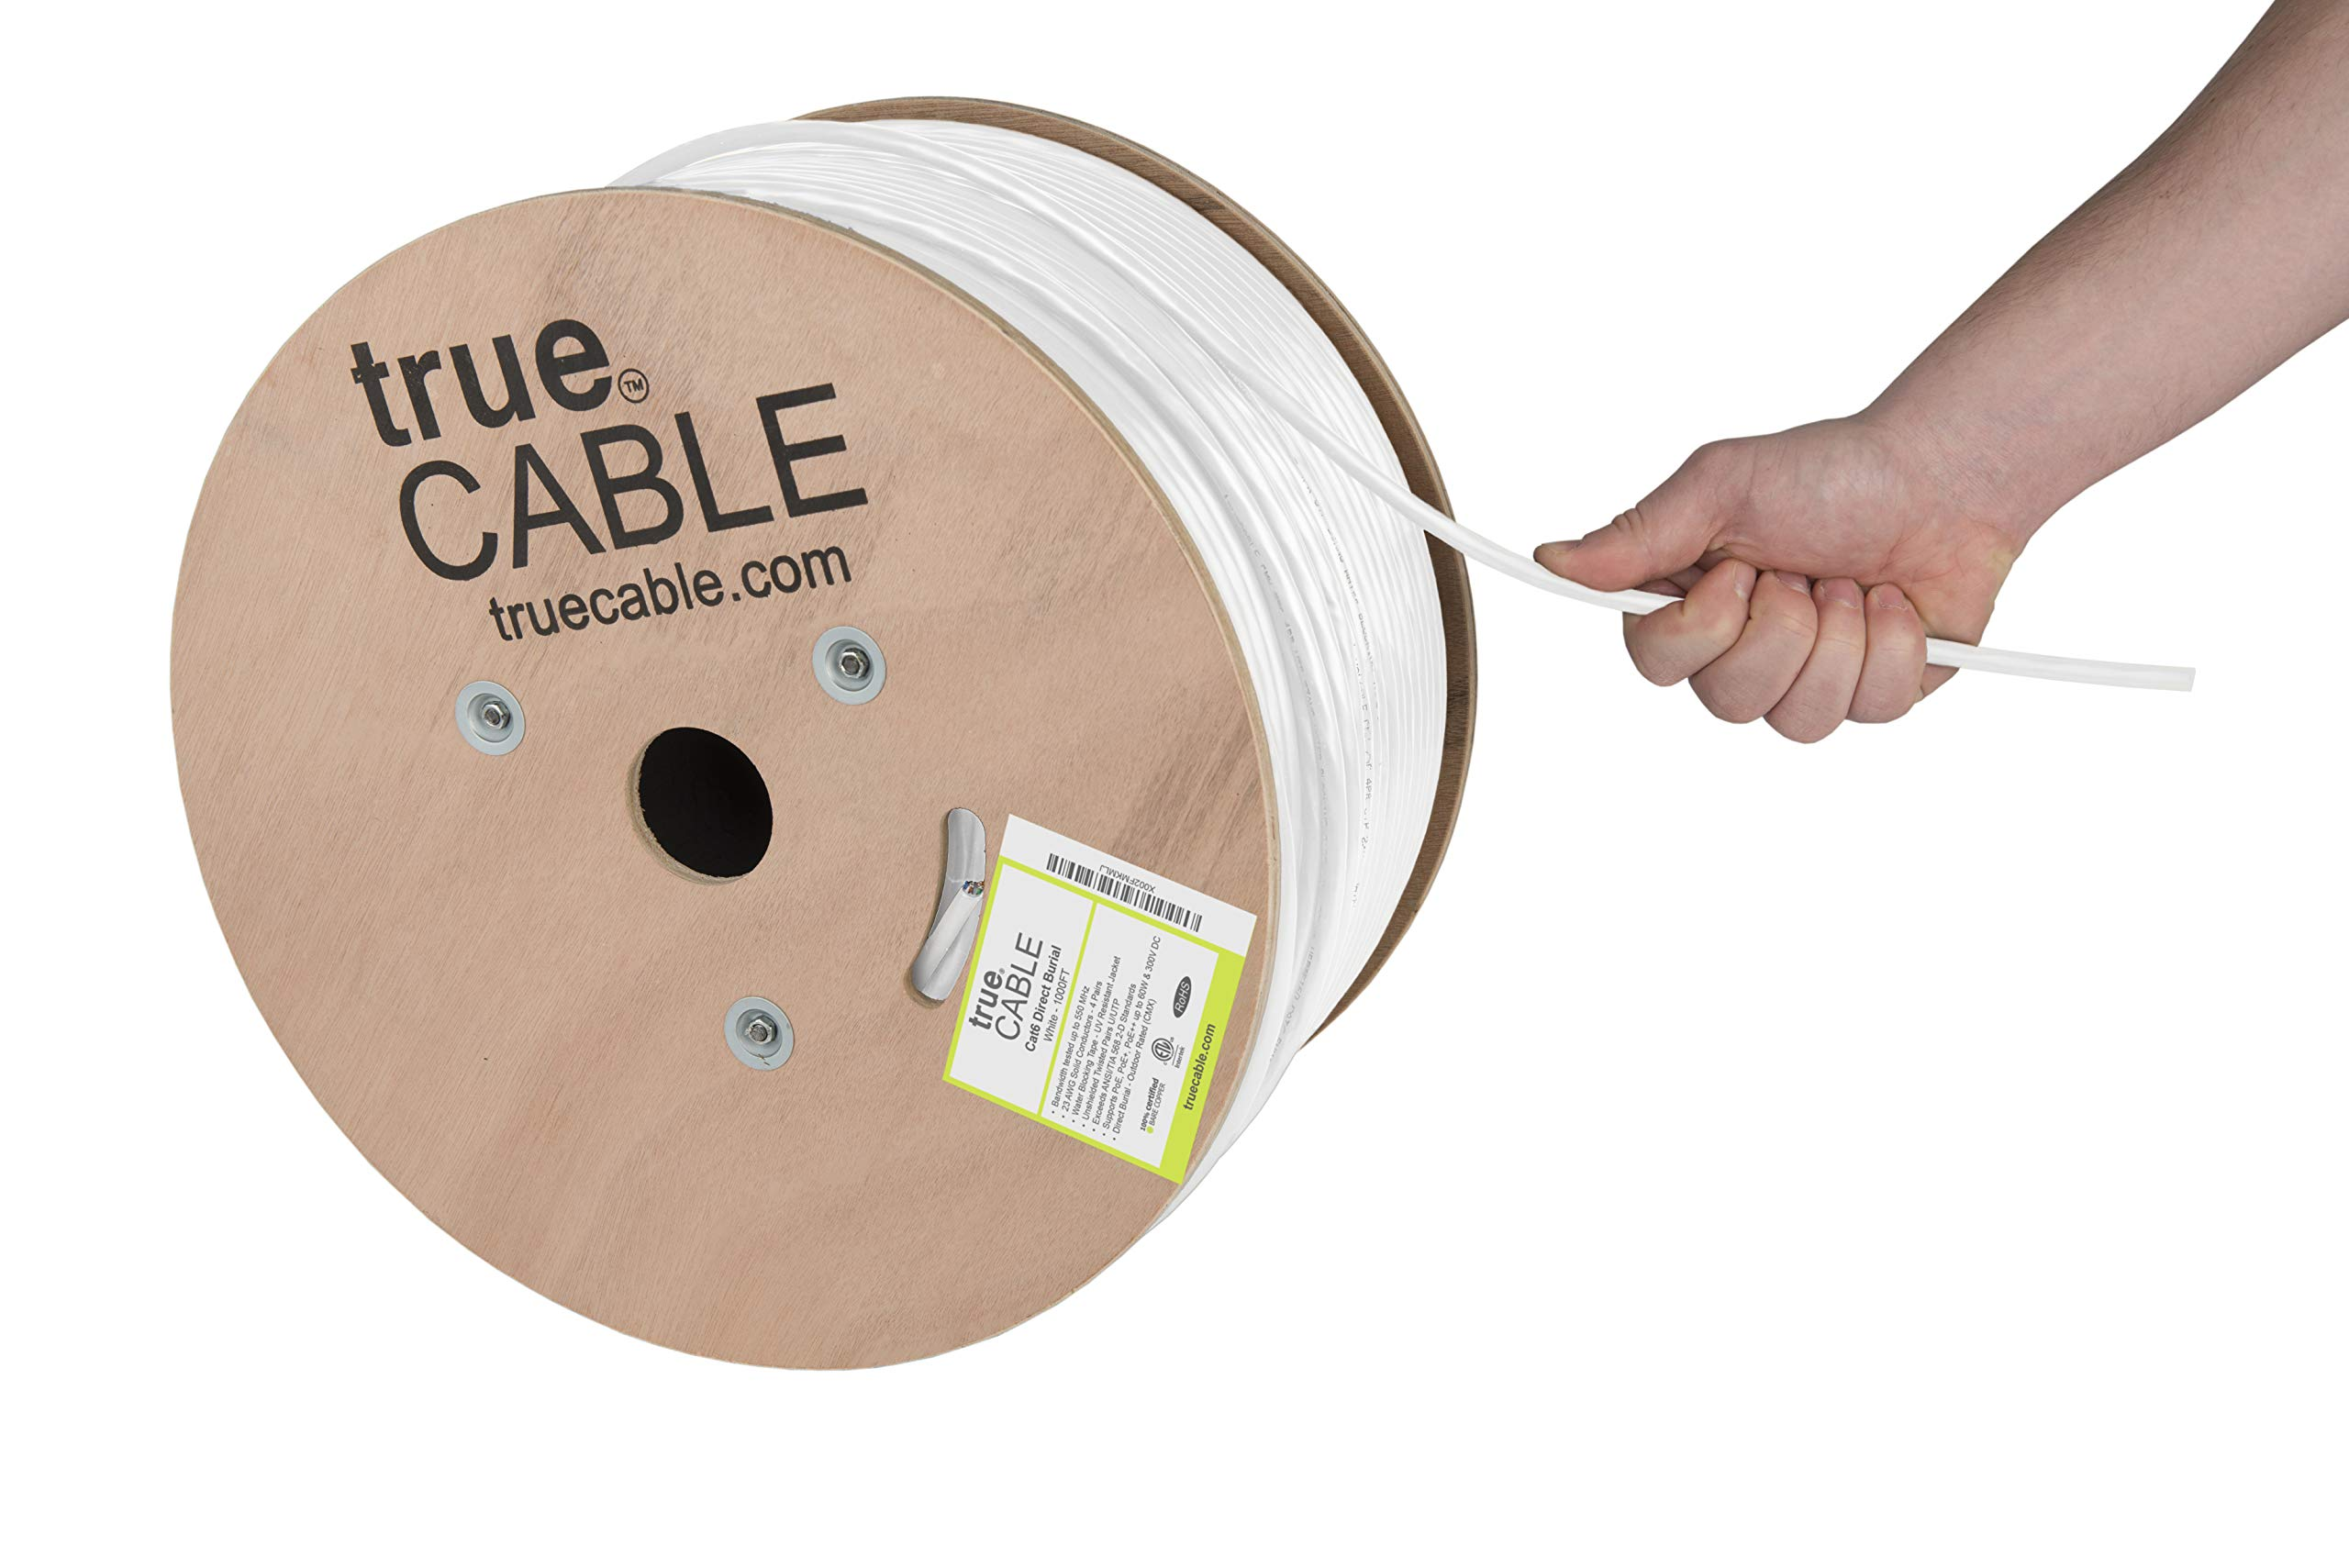 trueCABLE Cat6 Direct Burial, 1000ft, Waterproof, Outdoor Rated CMX, White, 23AWG Solid Bare Copper, 550MHz, ETL Listed, Unshielded UTP, Bulk Ethernet Cable